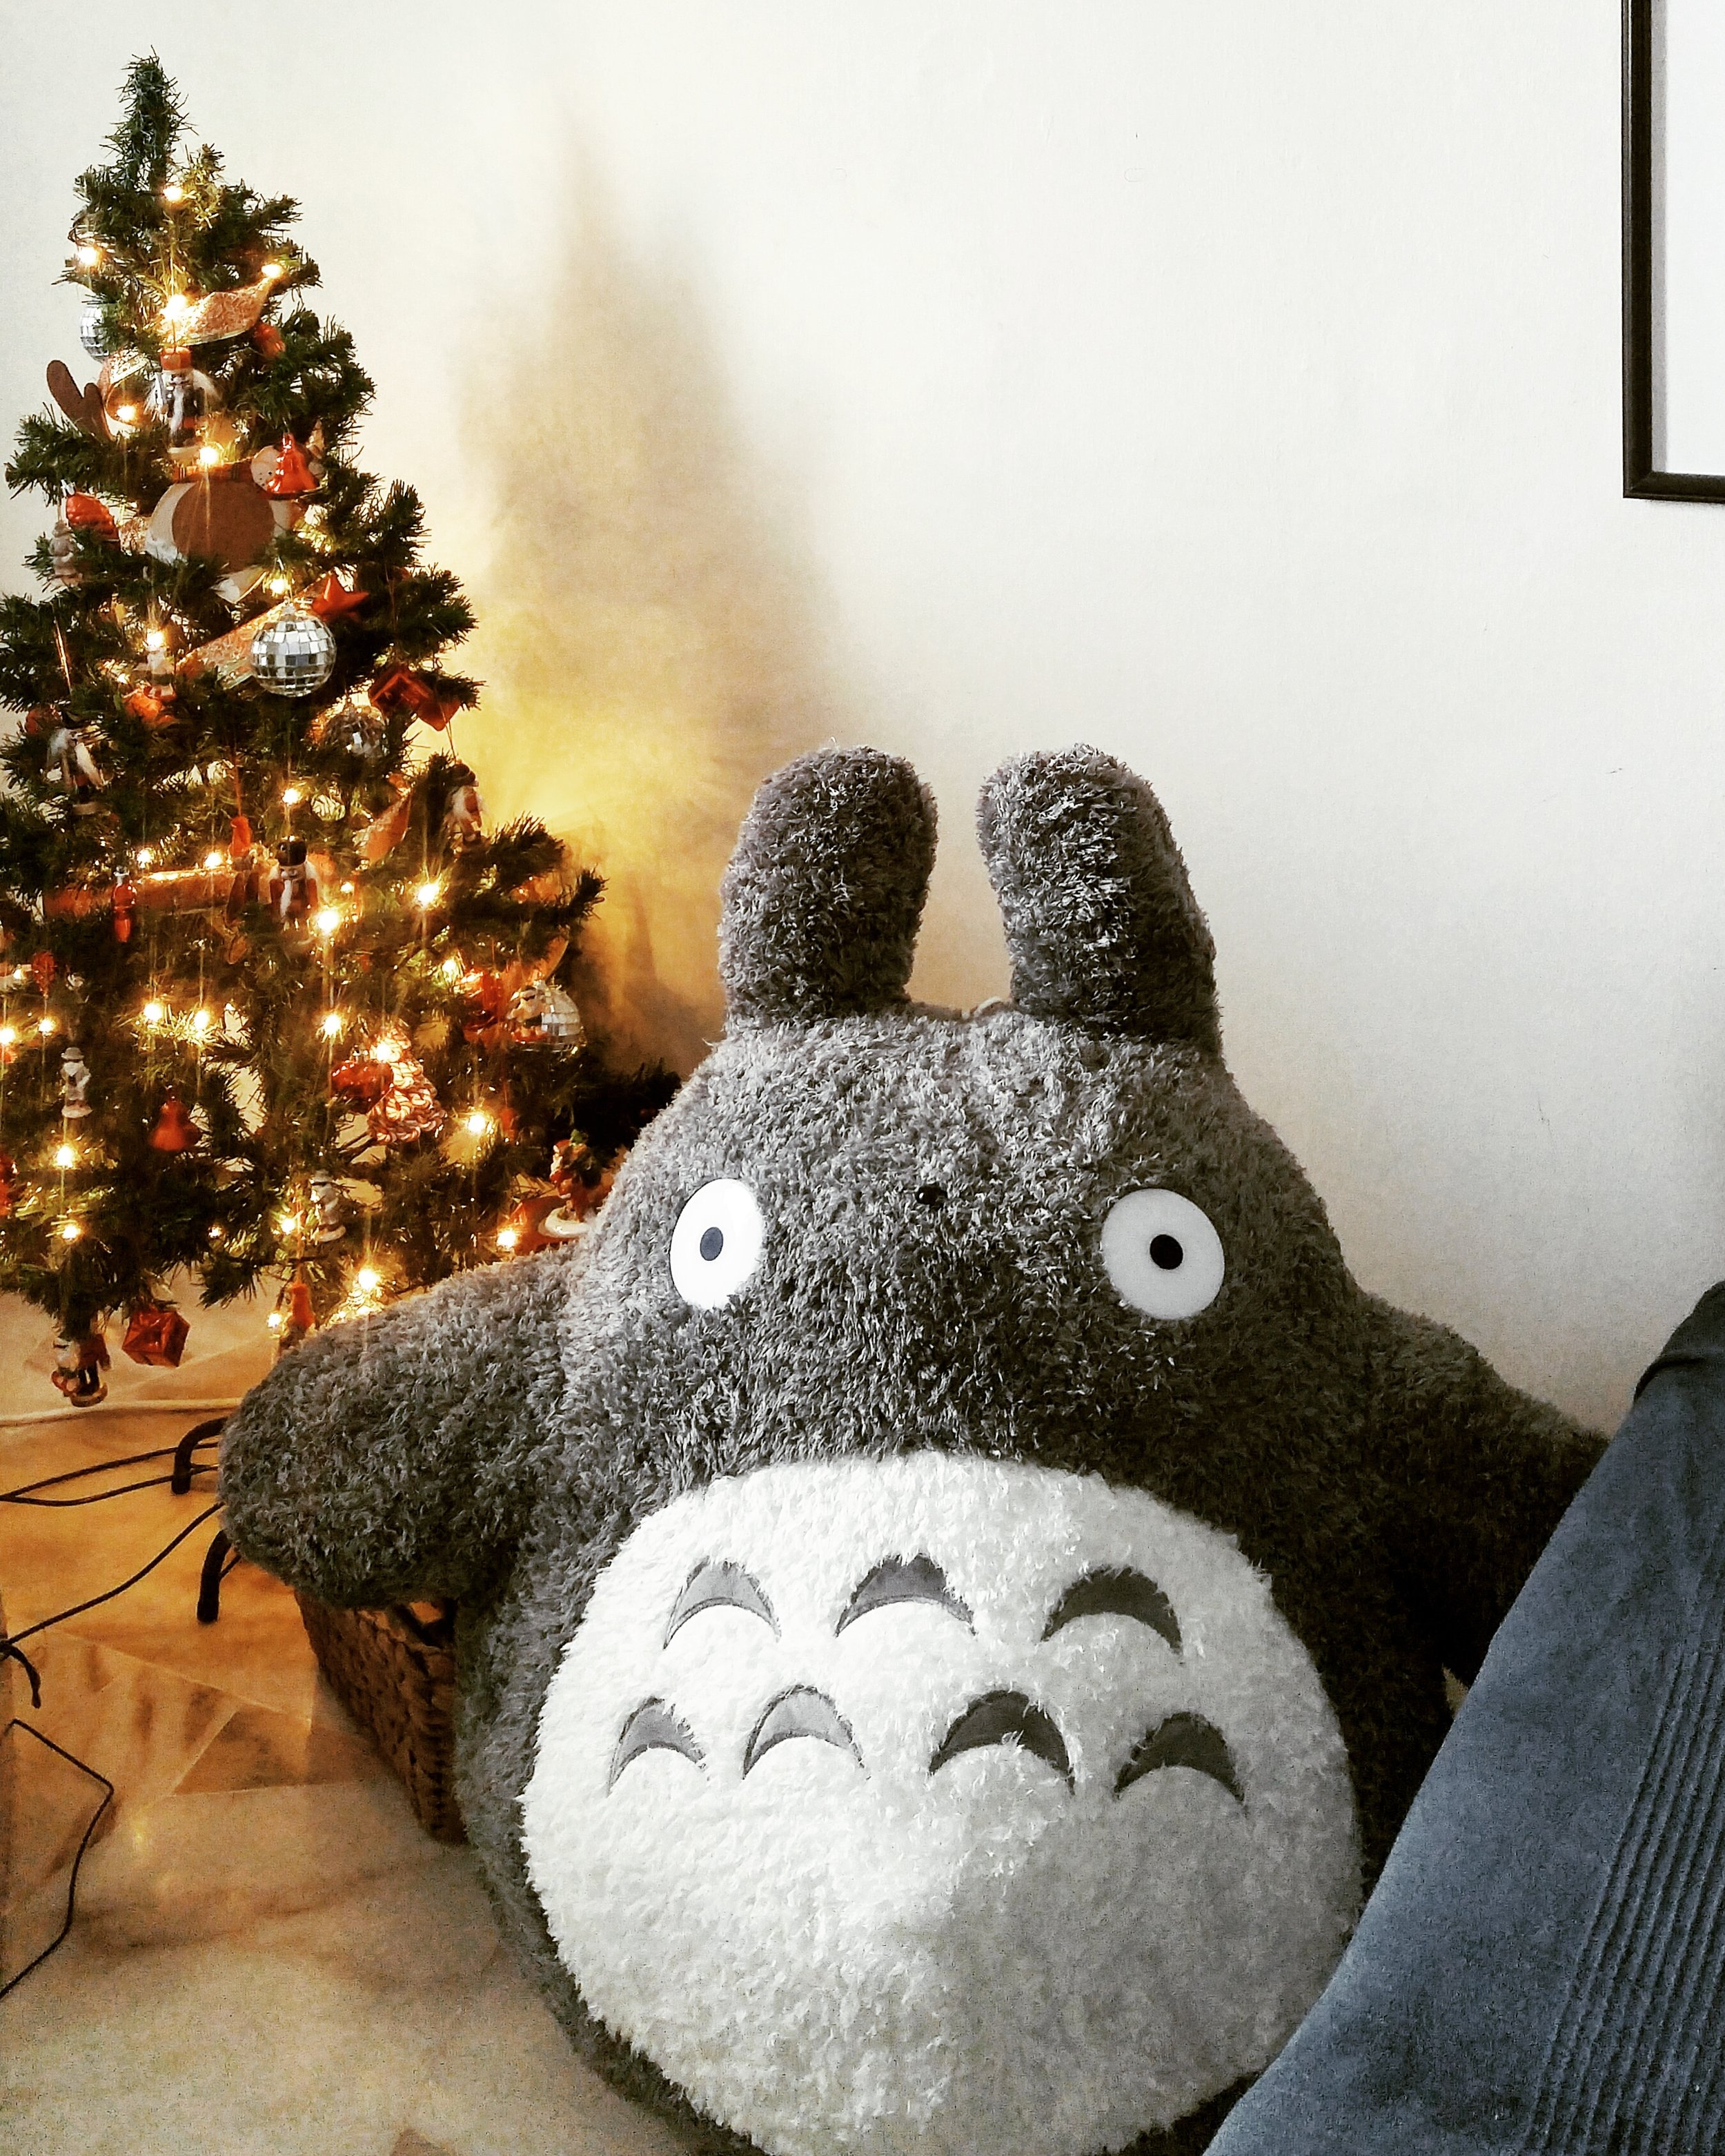 my christmas present arrived in time! a few months ago i babbled about how cute totoro is, and look who showed up :)